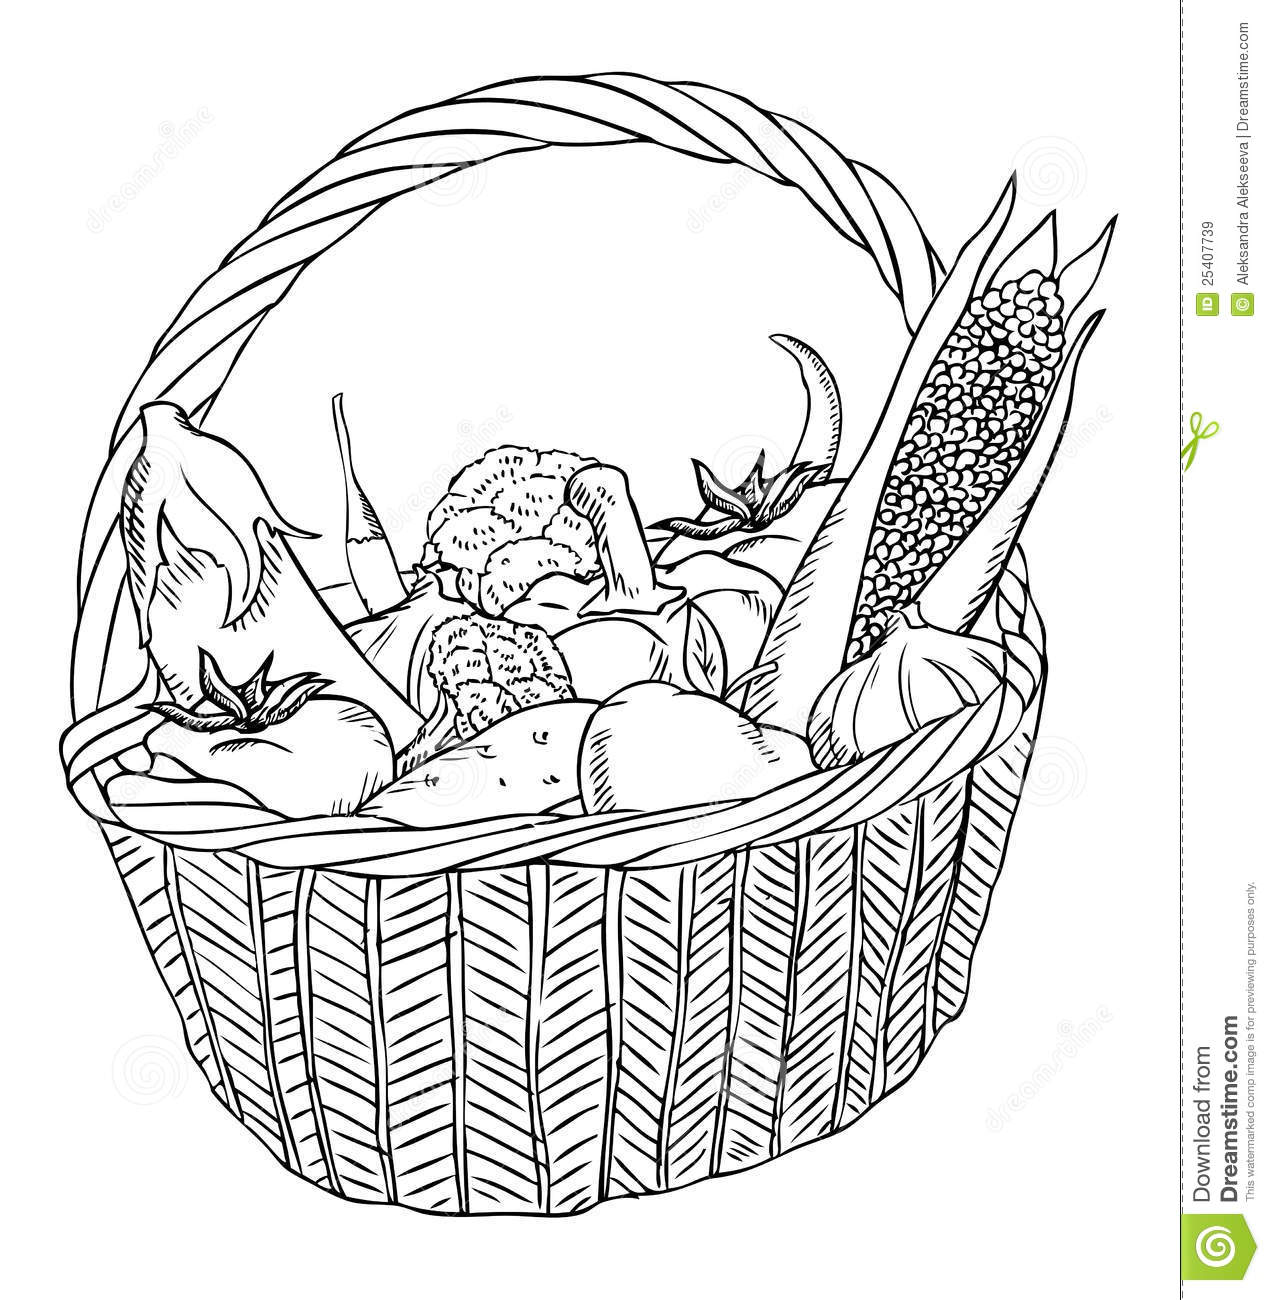 Basket With Different Vegetables Royalty Free Stock Images